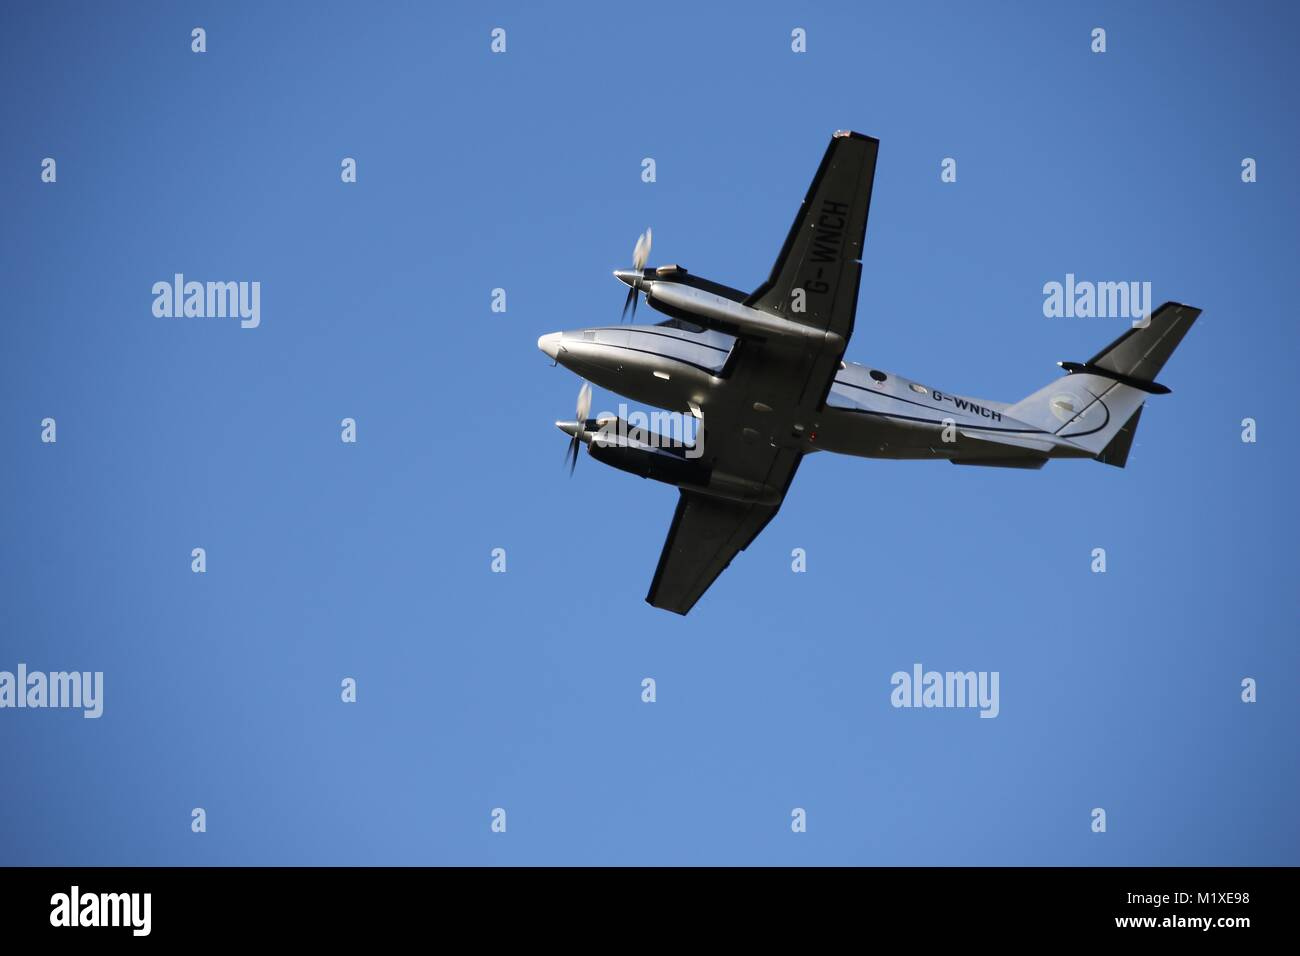 A small twin engine plane in a blue sky shortly after taking off from Fairoaks Airport near Woking, Surrey - Stock Image